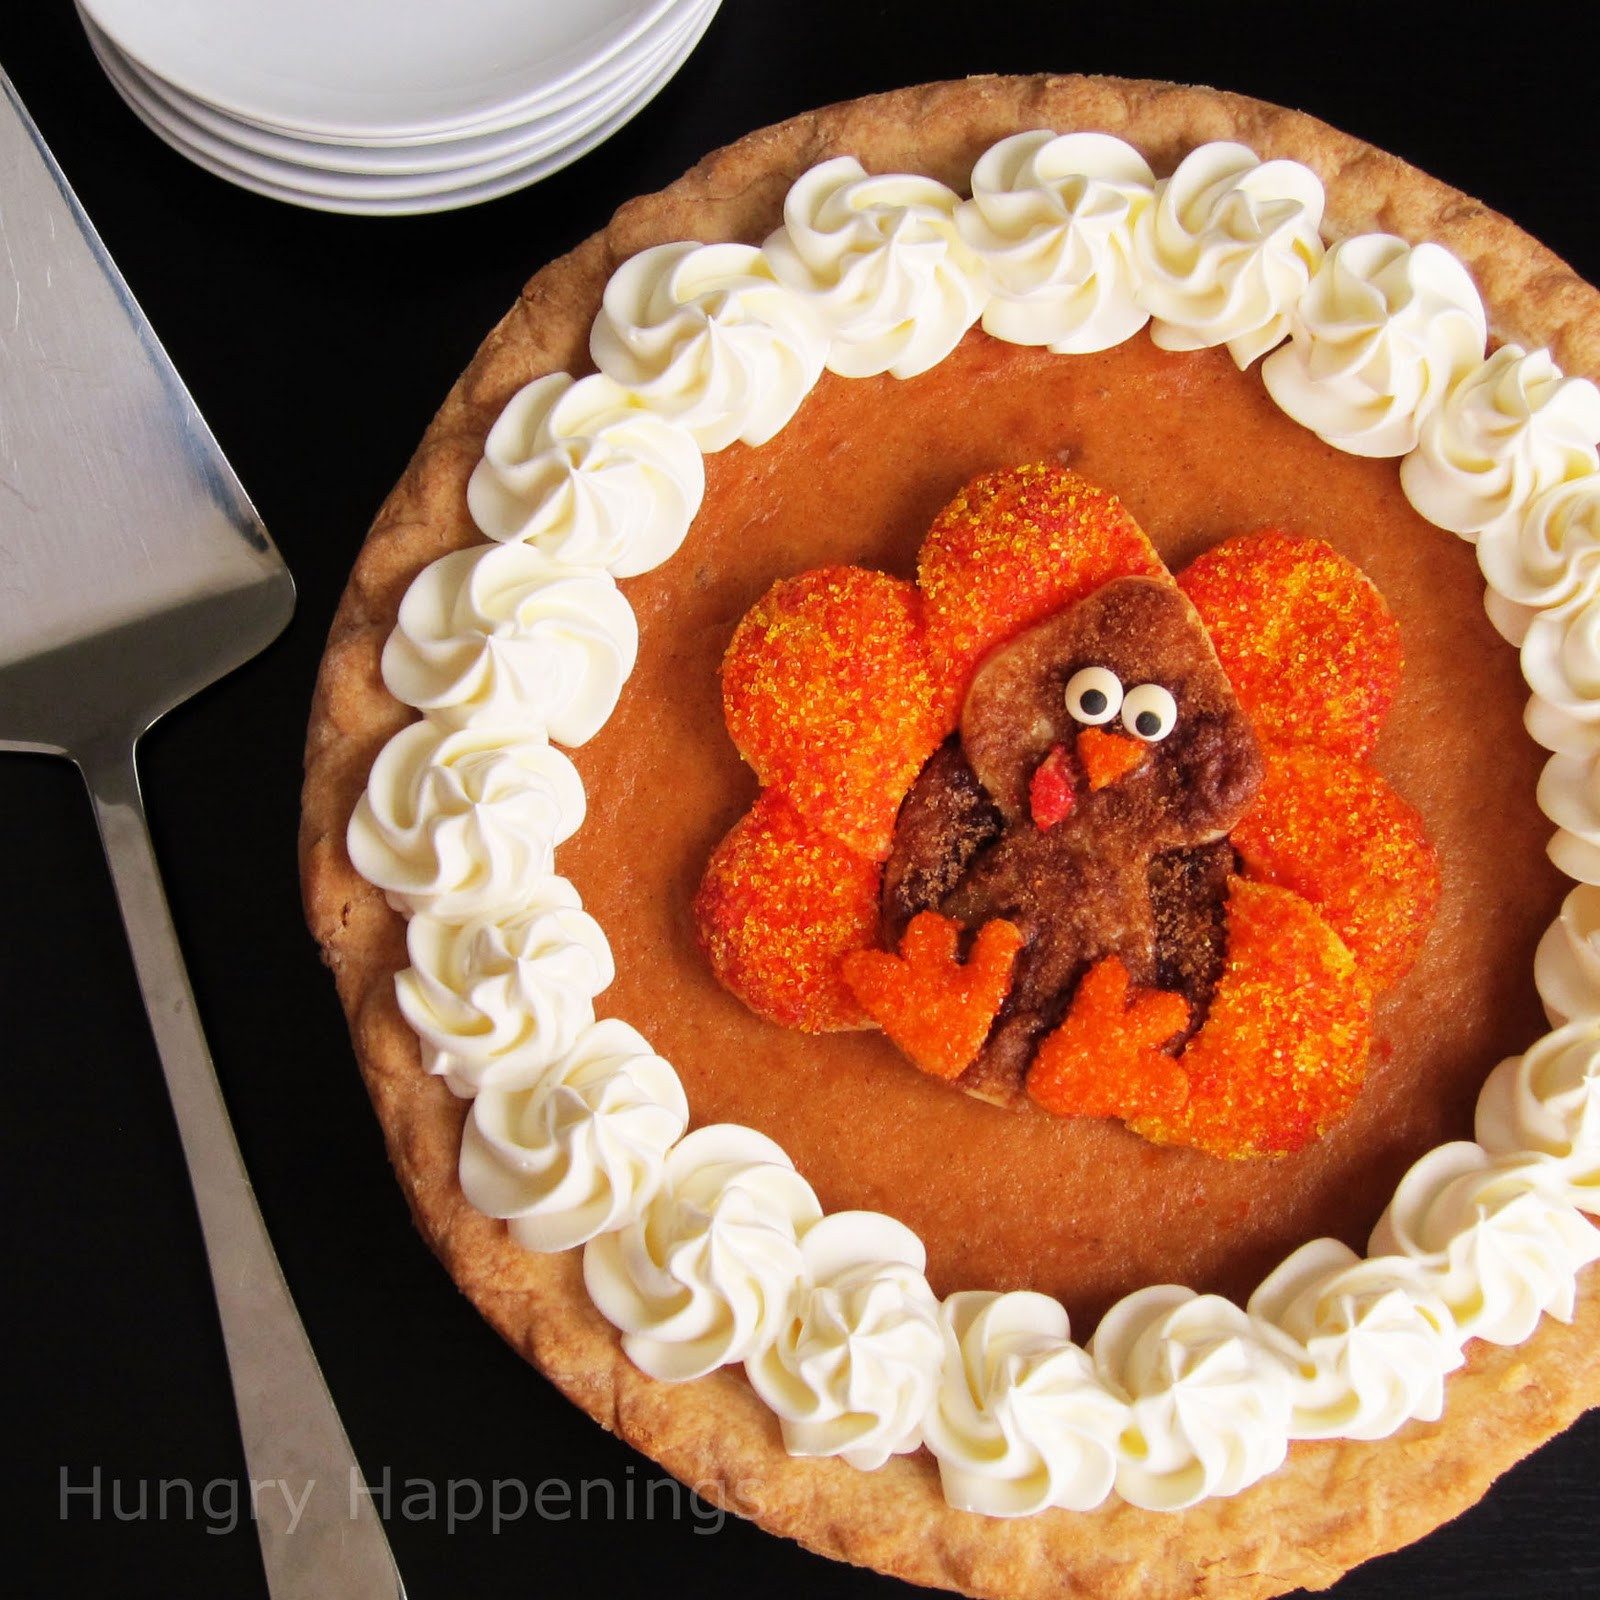 Pies For Thanksgiving  Decorated Pumpkin Pie Festive Thanksgiving Dessert